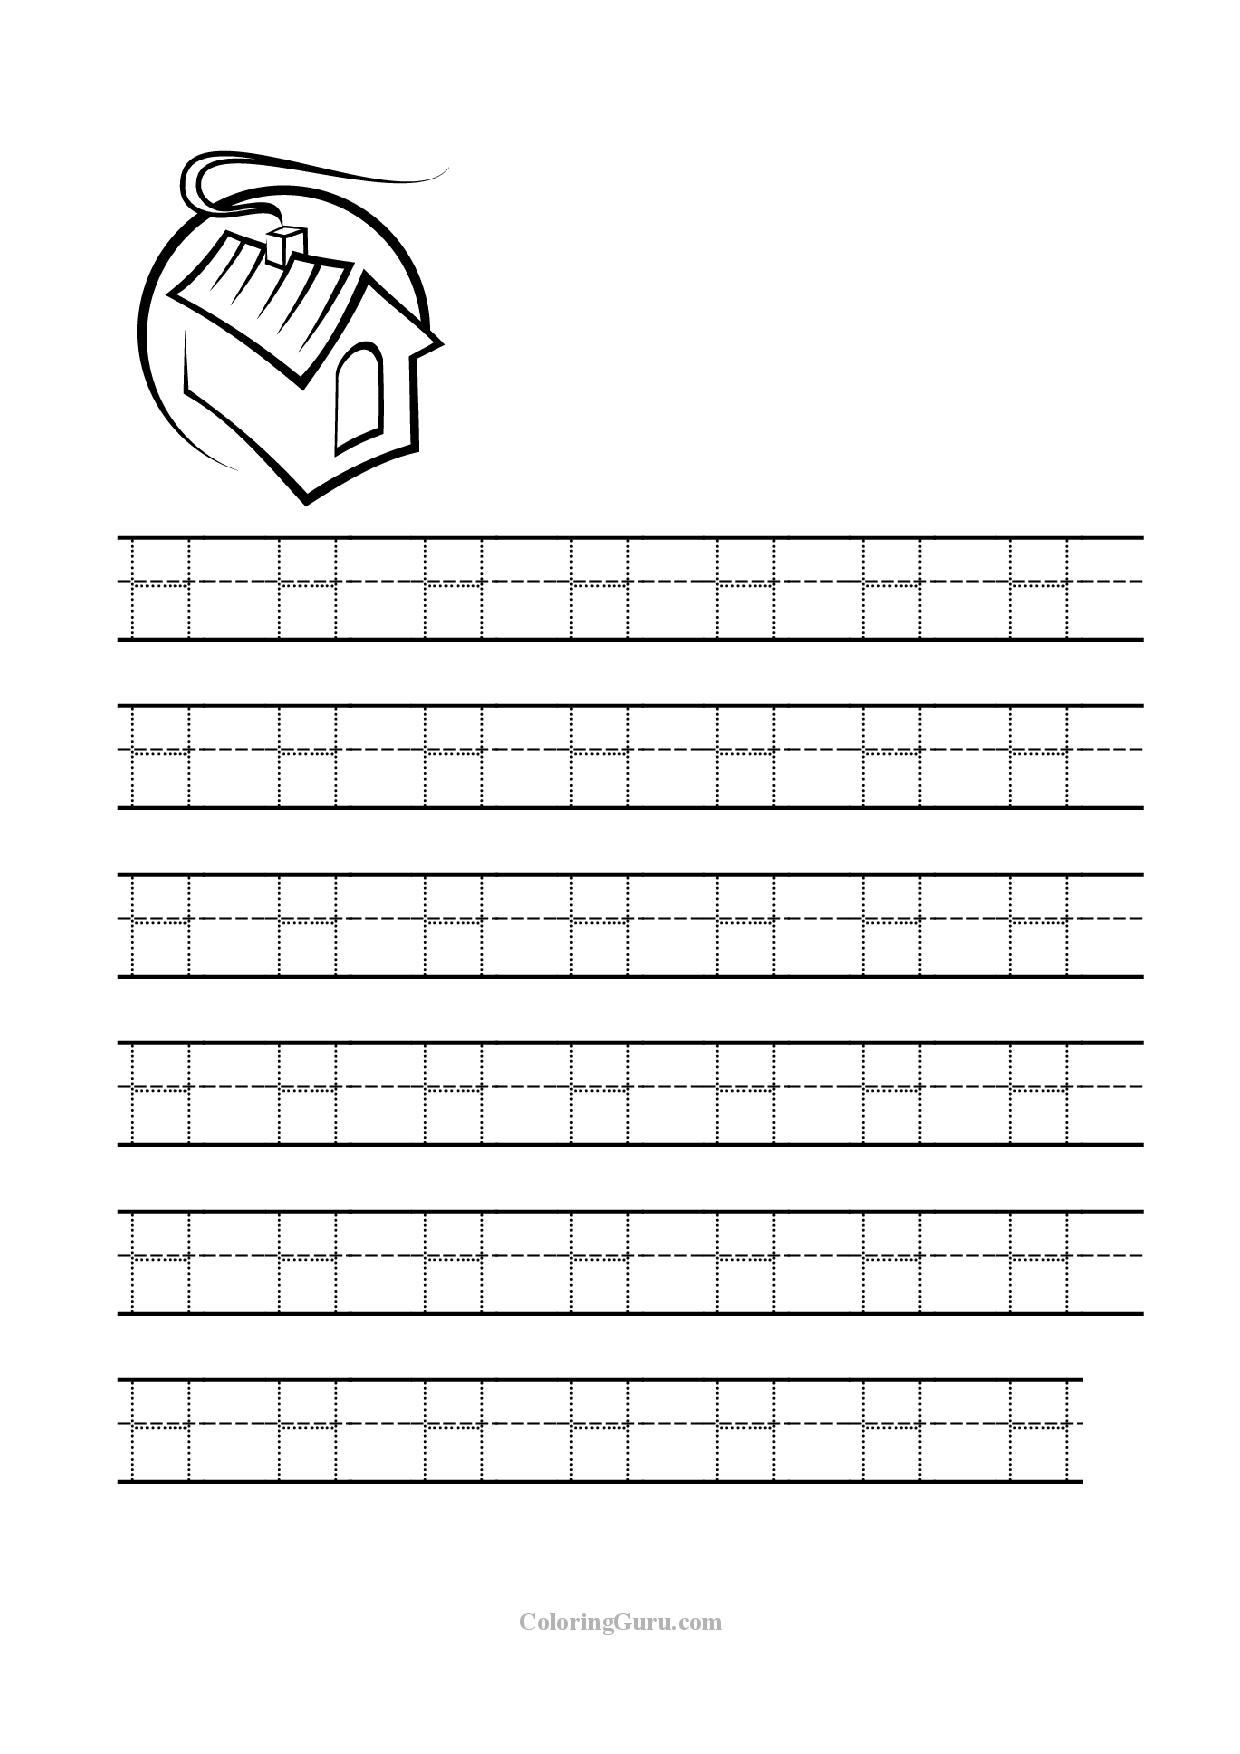 Letter H Worksheets Preschool Free Printable Tracing Letter H Worksheets for Preschool